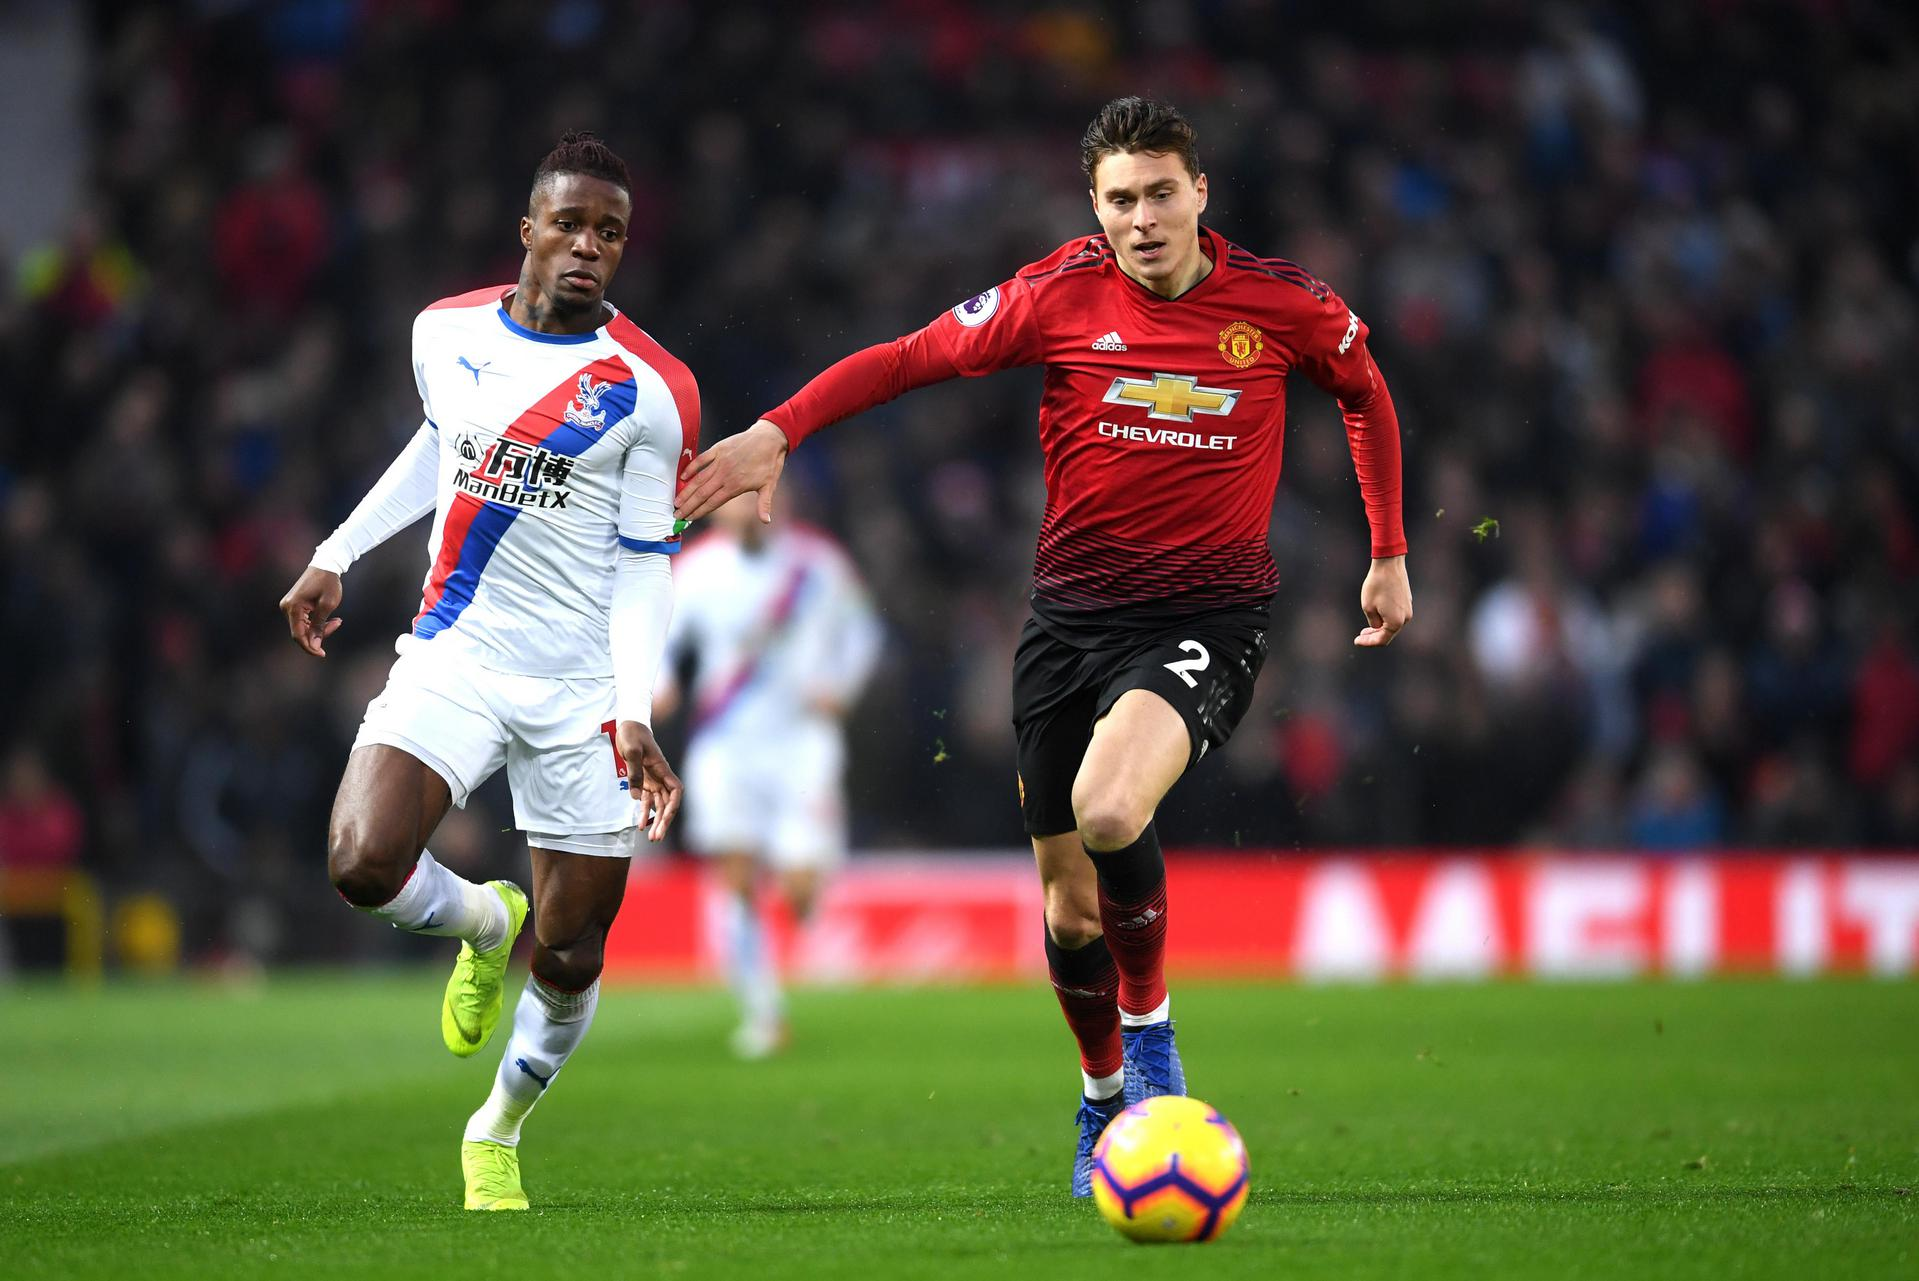 Wilfried Zaha and Victor Lindelof compete for the ball during United's Premier League game with Crystal Palace in November 2018.